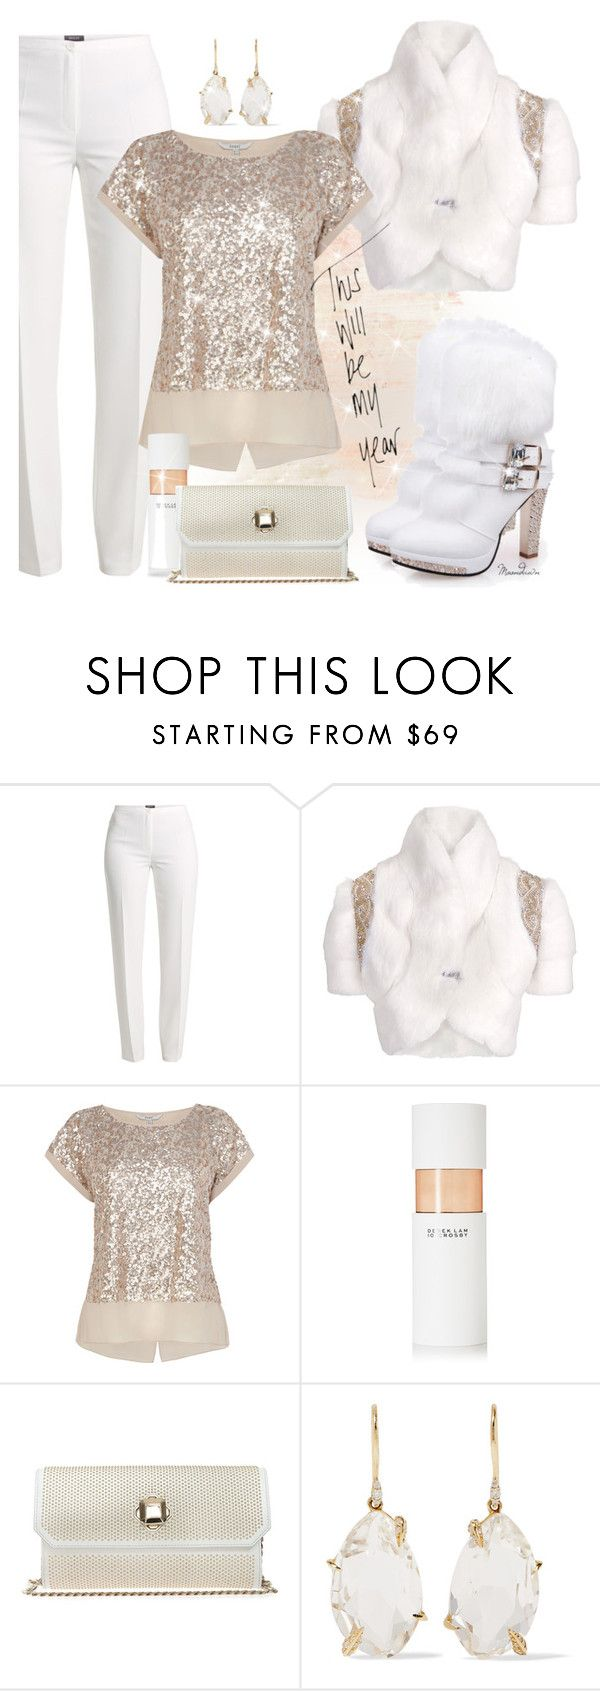 """#264"" by moondawn ❤ liked on Polyvore featuring Basler, Matthew Williamson, 10 Crosby Derek Lam, Elie Saab and Alexis Bittar"